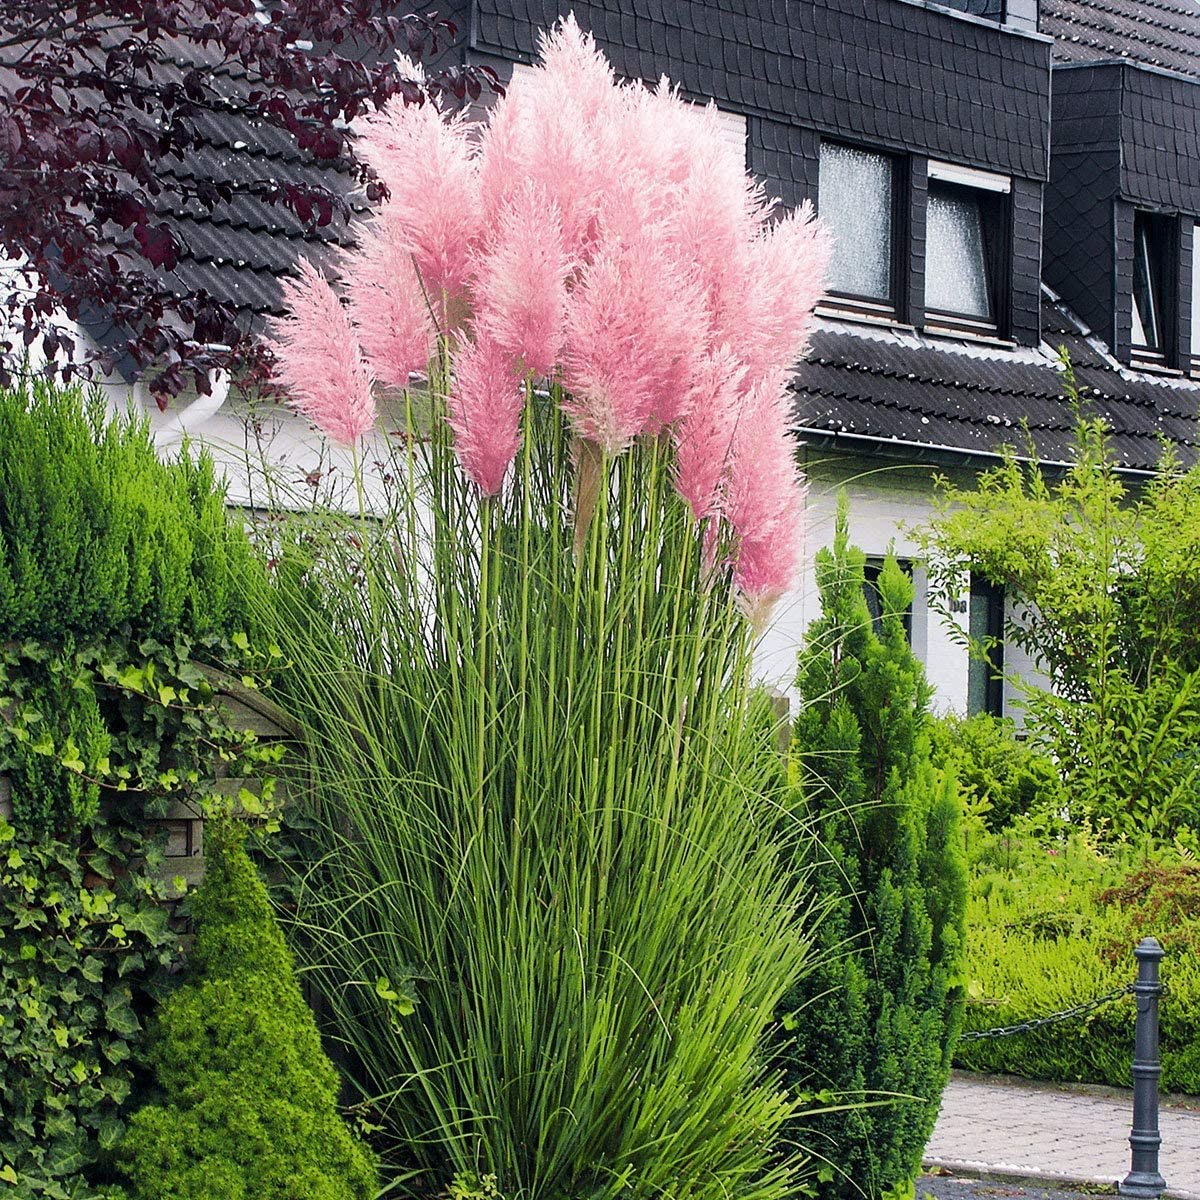 Rare 500pcs Pink Pampas Grass Ornamental Grass, Hardy Perennial Flower Seeds for Balcony, Terrace or as a Container Plant